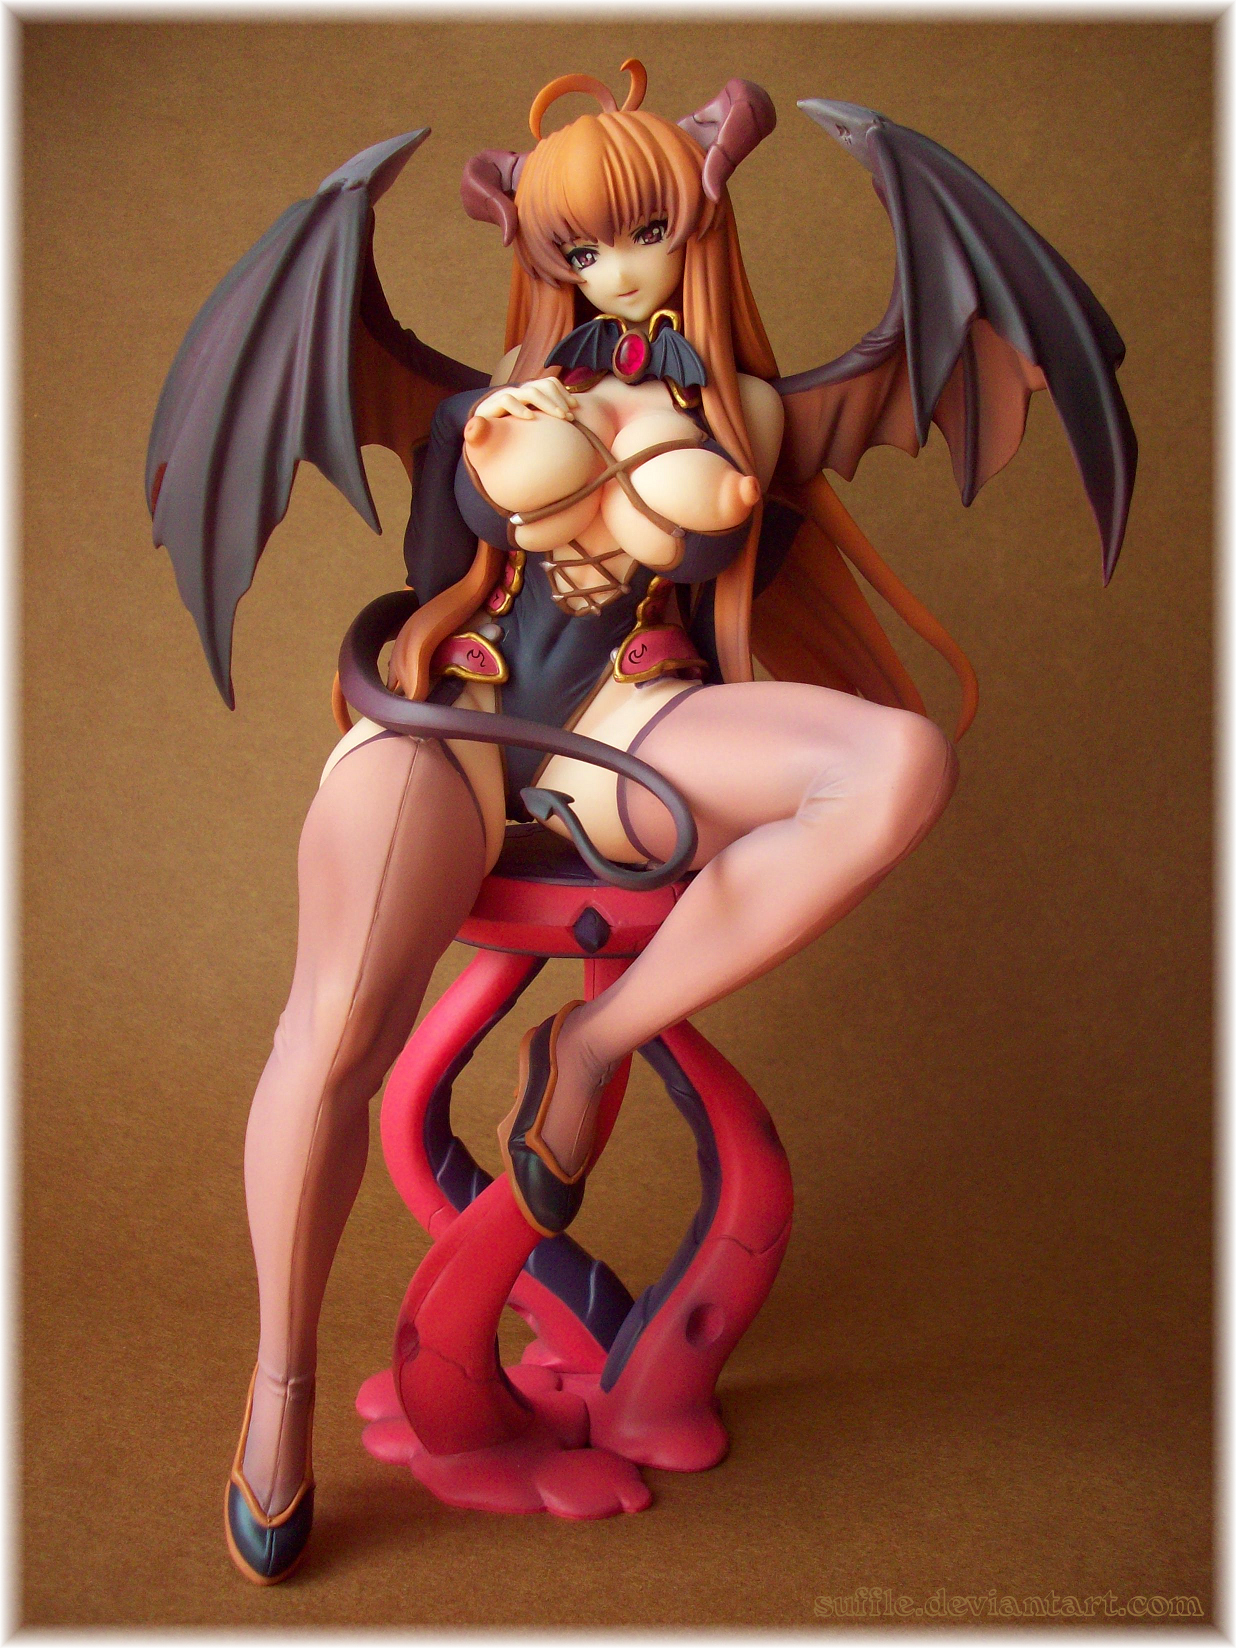 wings tail succubus large_breasts horns nipples devil_tail mogudan sexy exposed_breasts sexy_pose seed demon_wings comic unreal sylvia orchid_seed breast yamachichi succubus_sylvia exposed_nipples